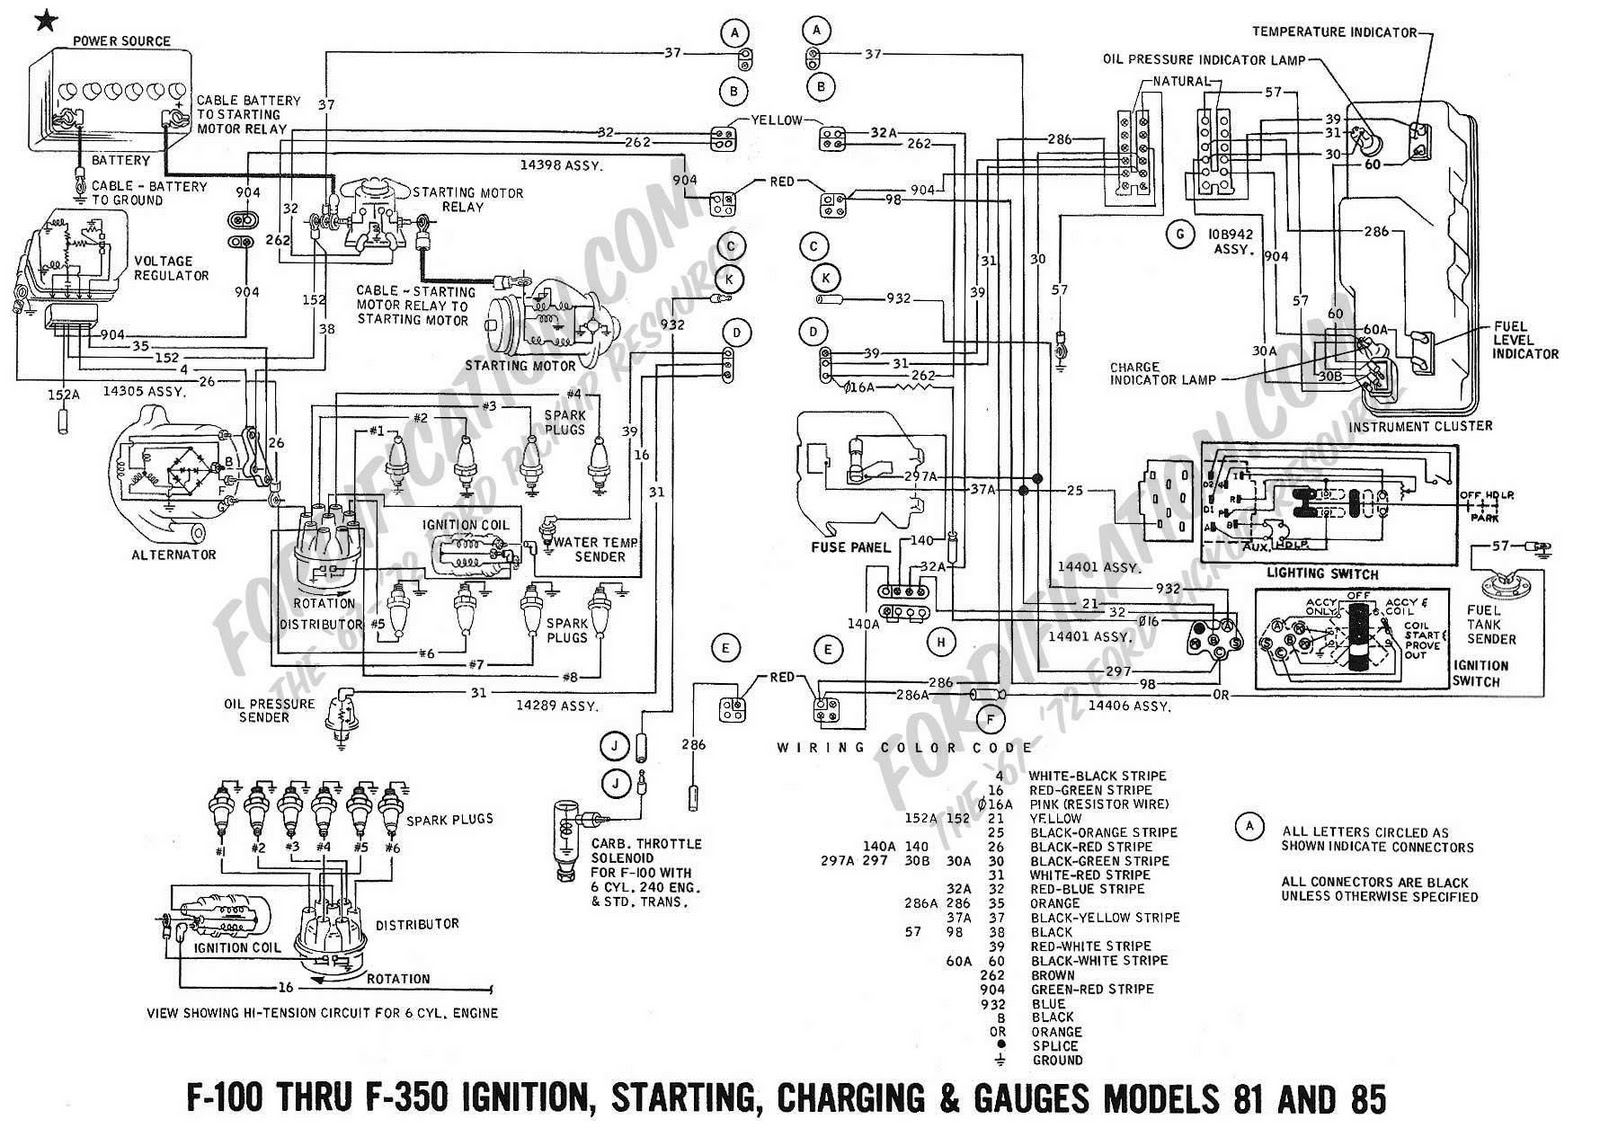 1969 ford f100 f350 ignition starting charging and 1957 Chevy Wiring  Harness Diagram 1955 Ford Thunderbird Generator